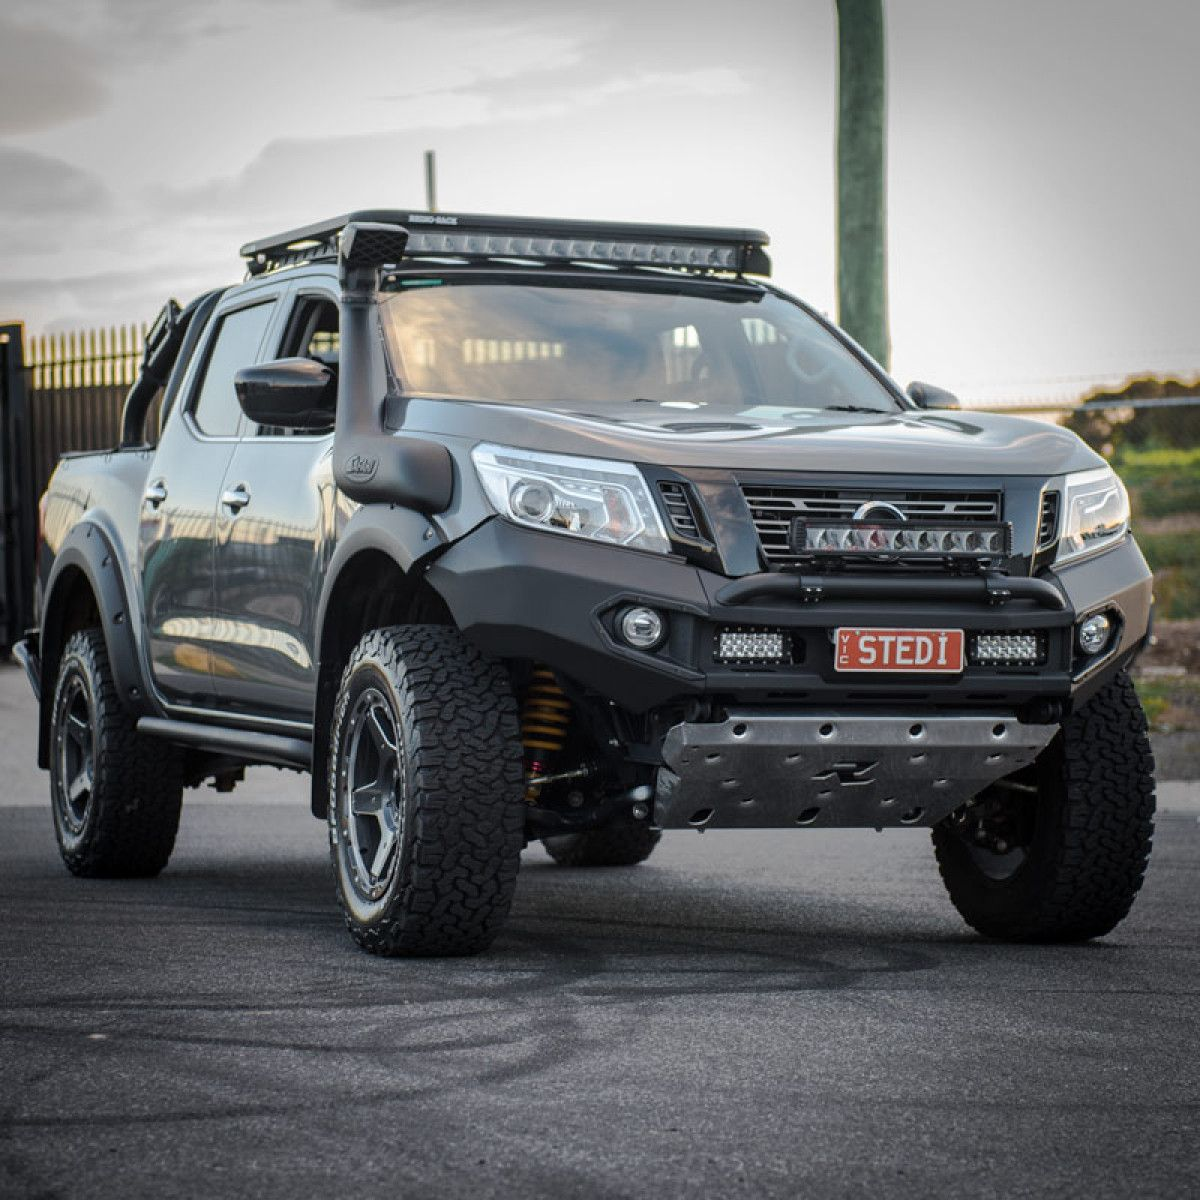 The Stedi St2k Series 40 5 Inch 16 Led Curved Light Bar Has Been Built For A Different Purpose The Reflector Style Nissan Navara Led Light Bars Nissan Trucks